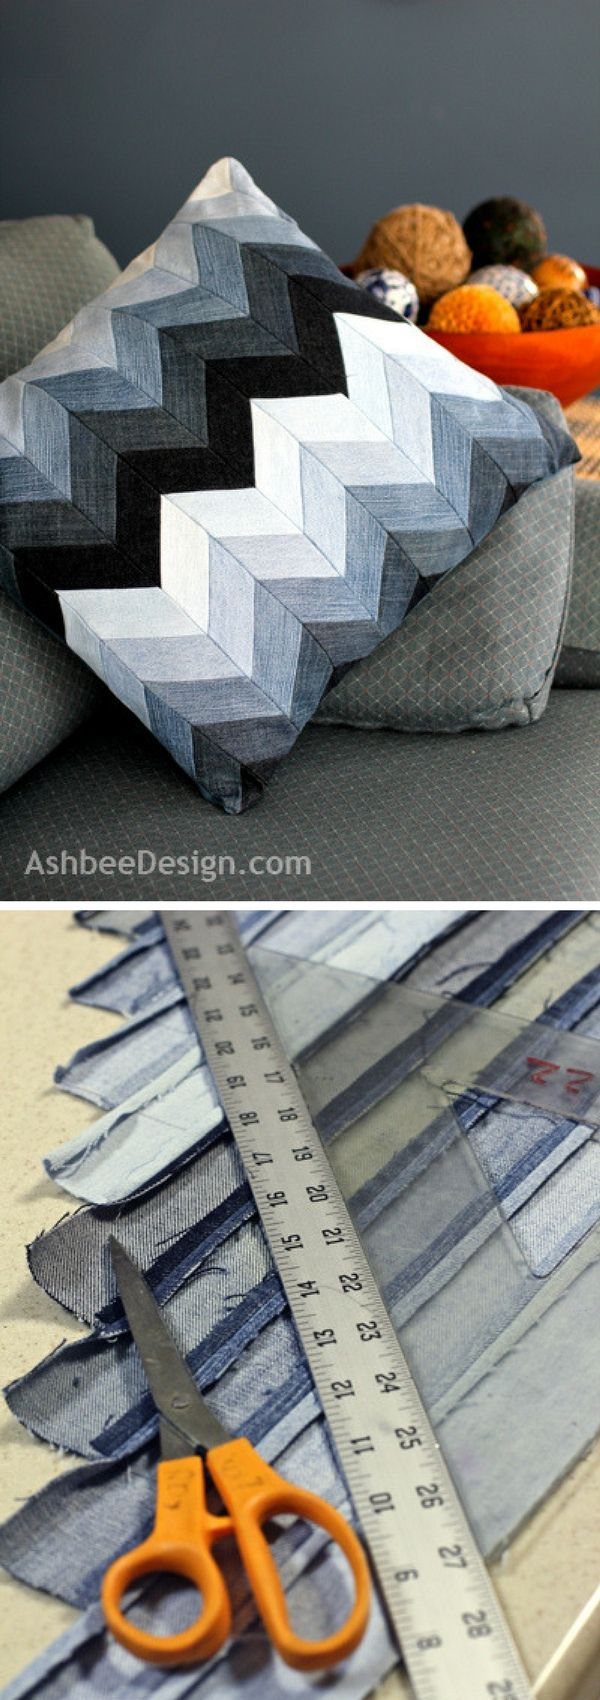 10 Awesome Ways to Use Old Jeans for Decor